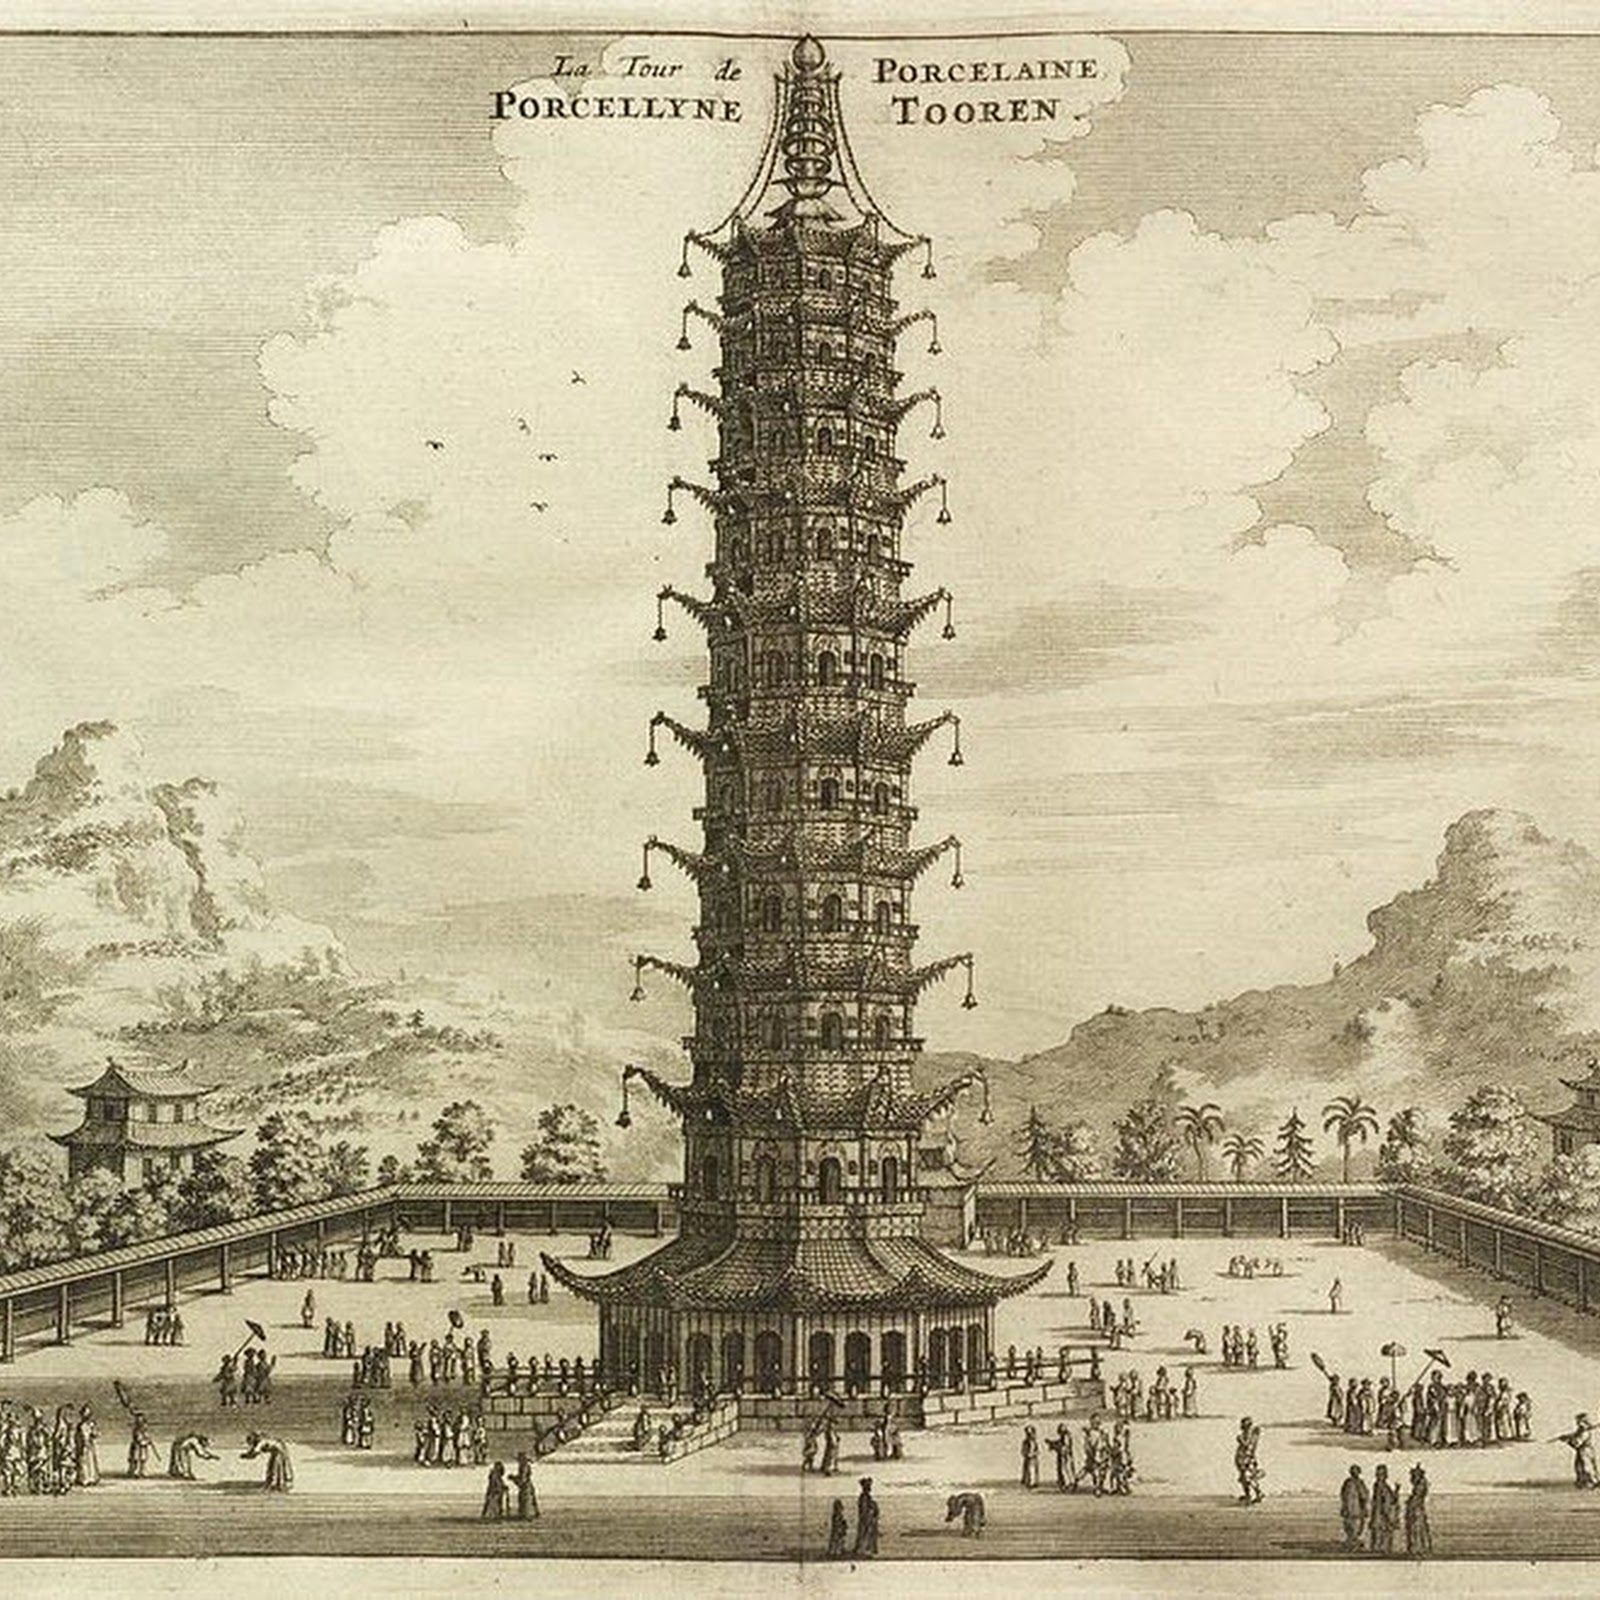 Famous Porcelain Tower of Nanjing Rebuilt